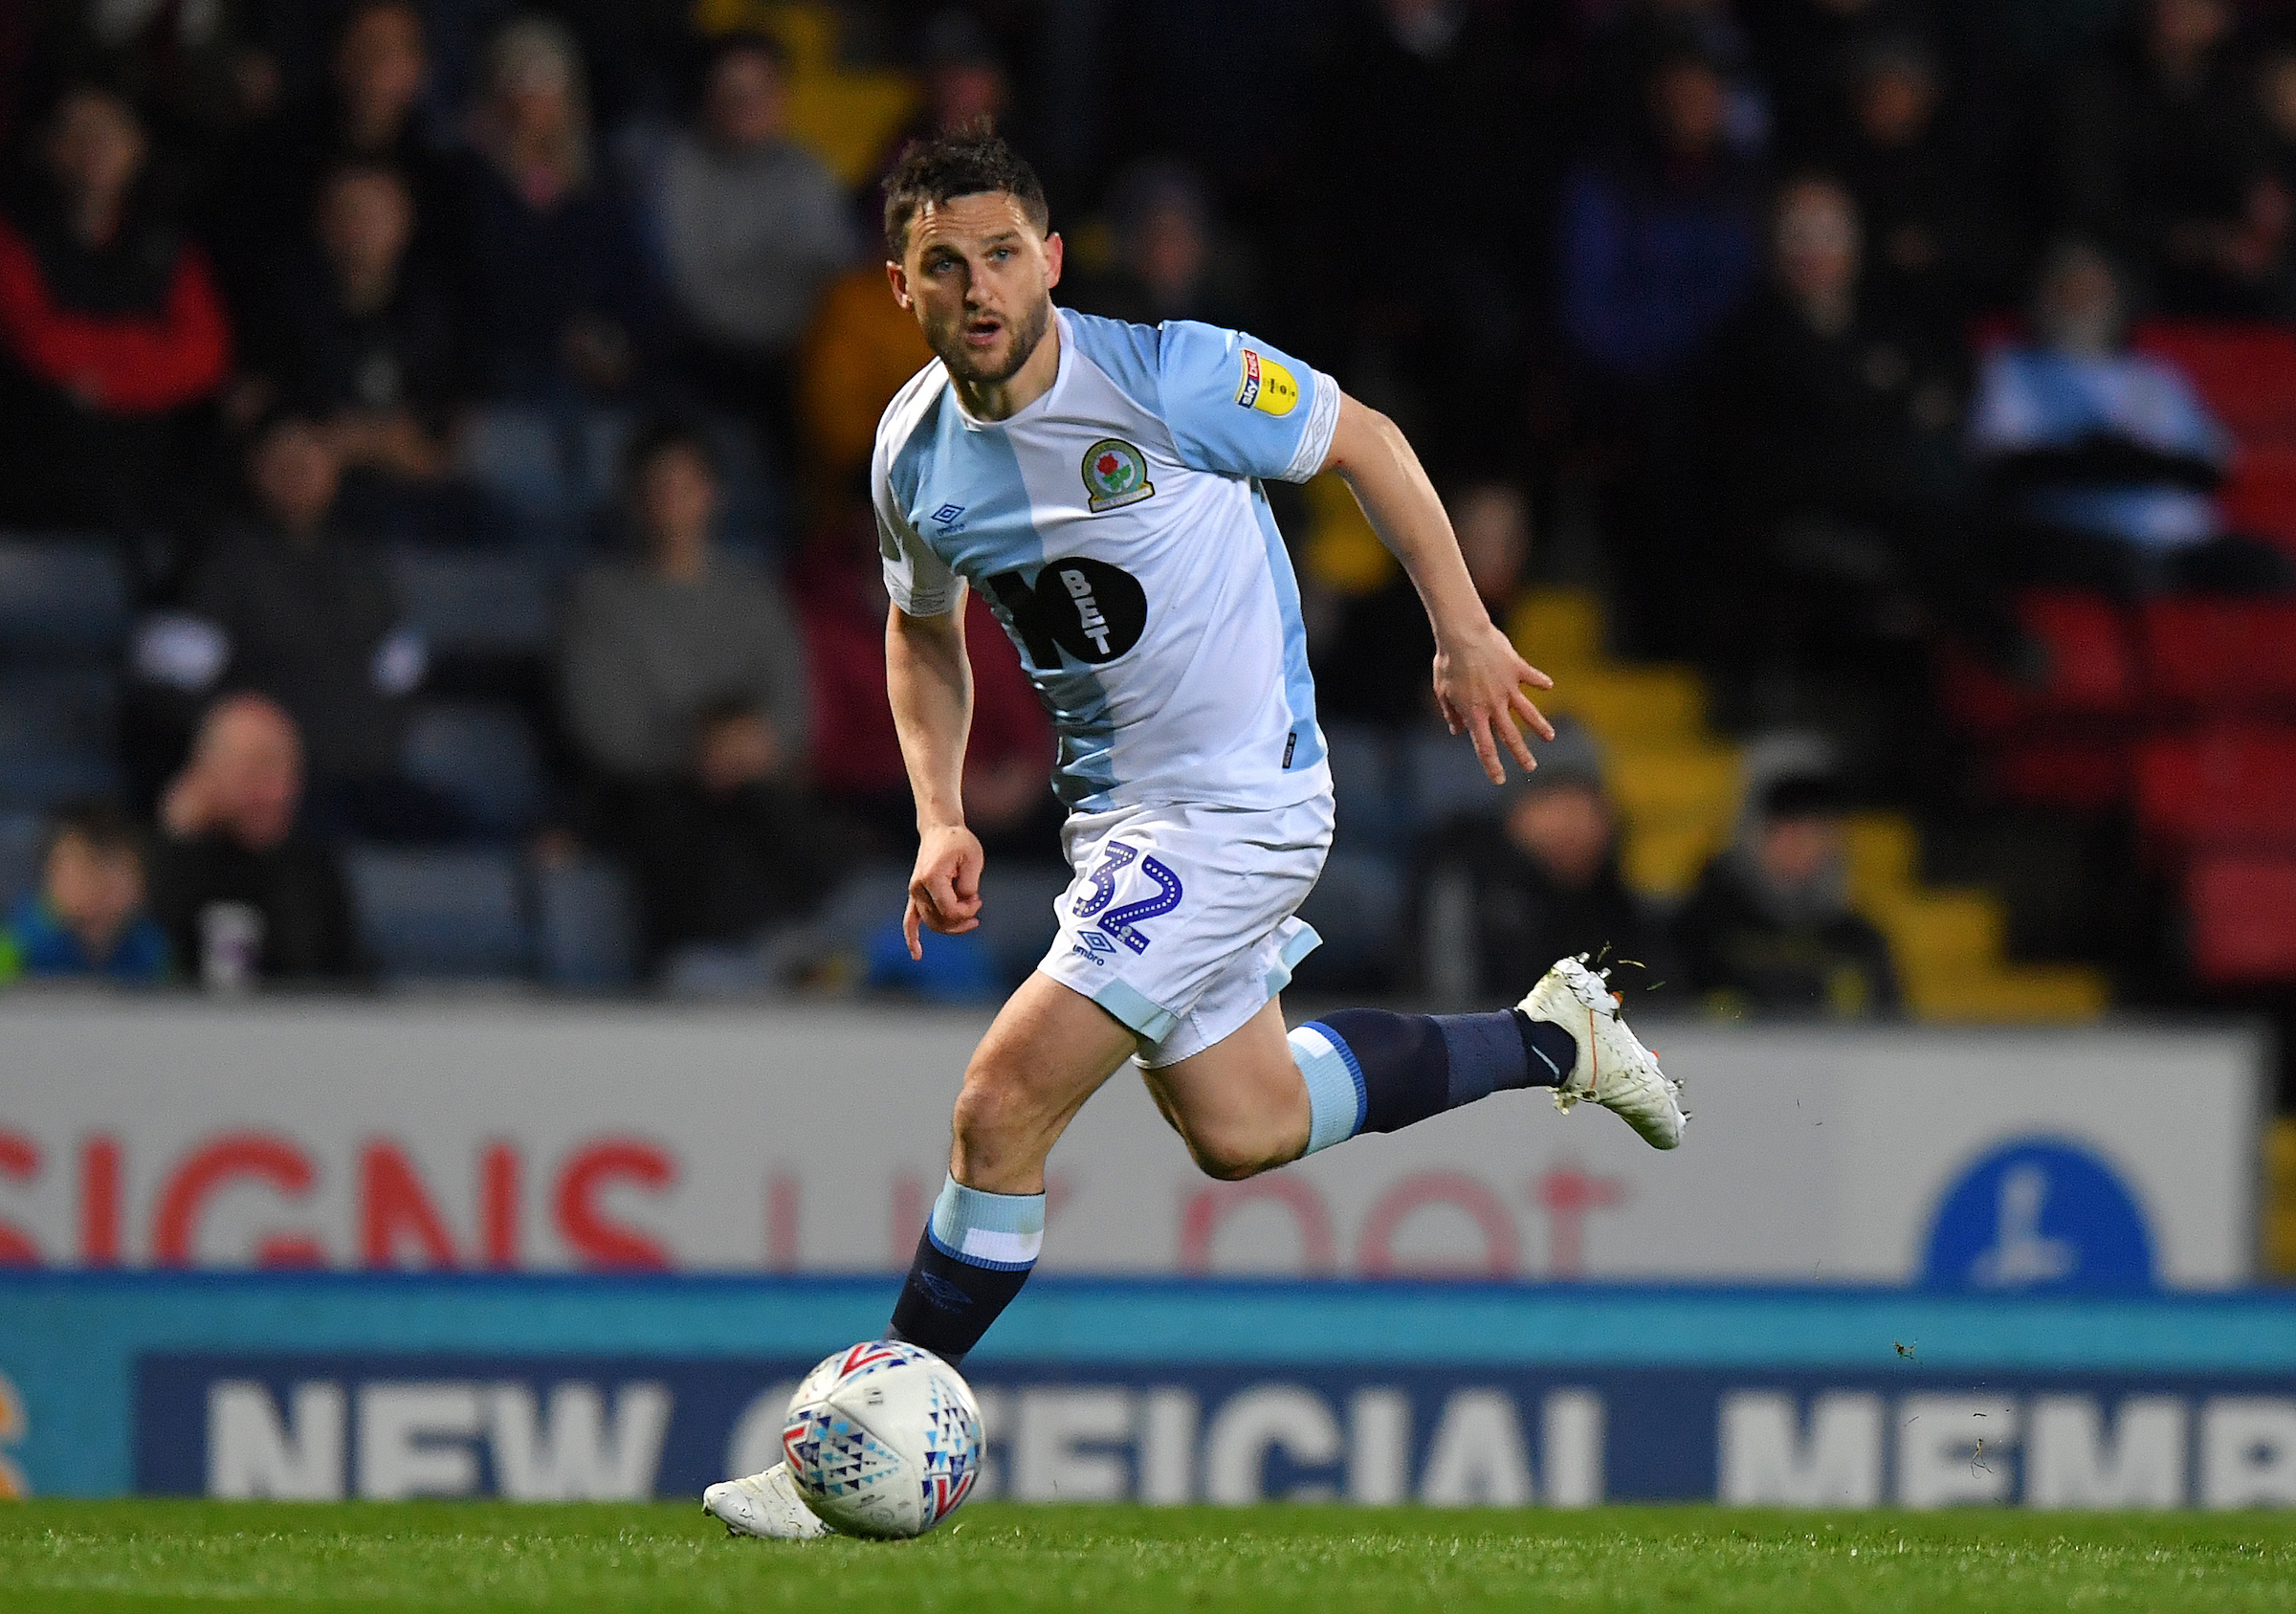 Craig Conway made a rare start in Rovers' win over Derby County